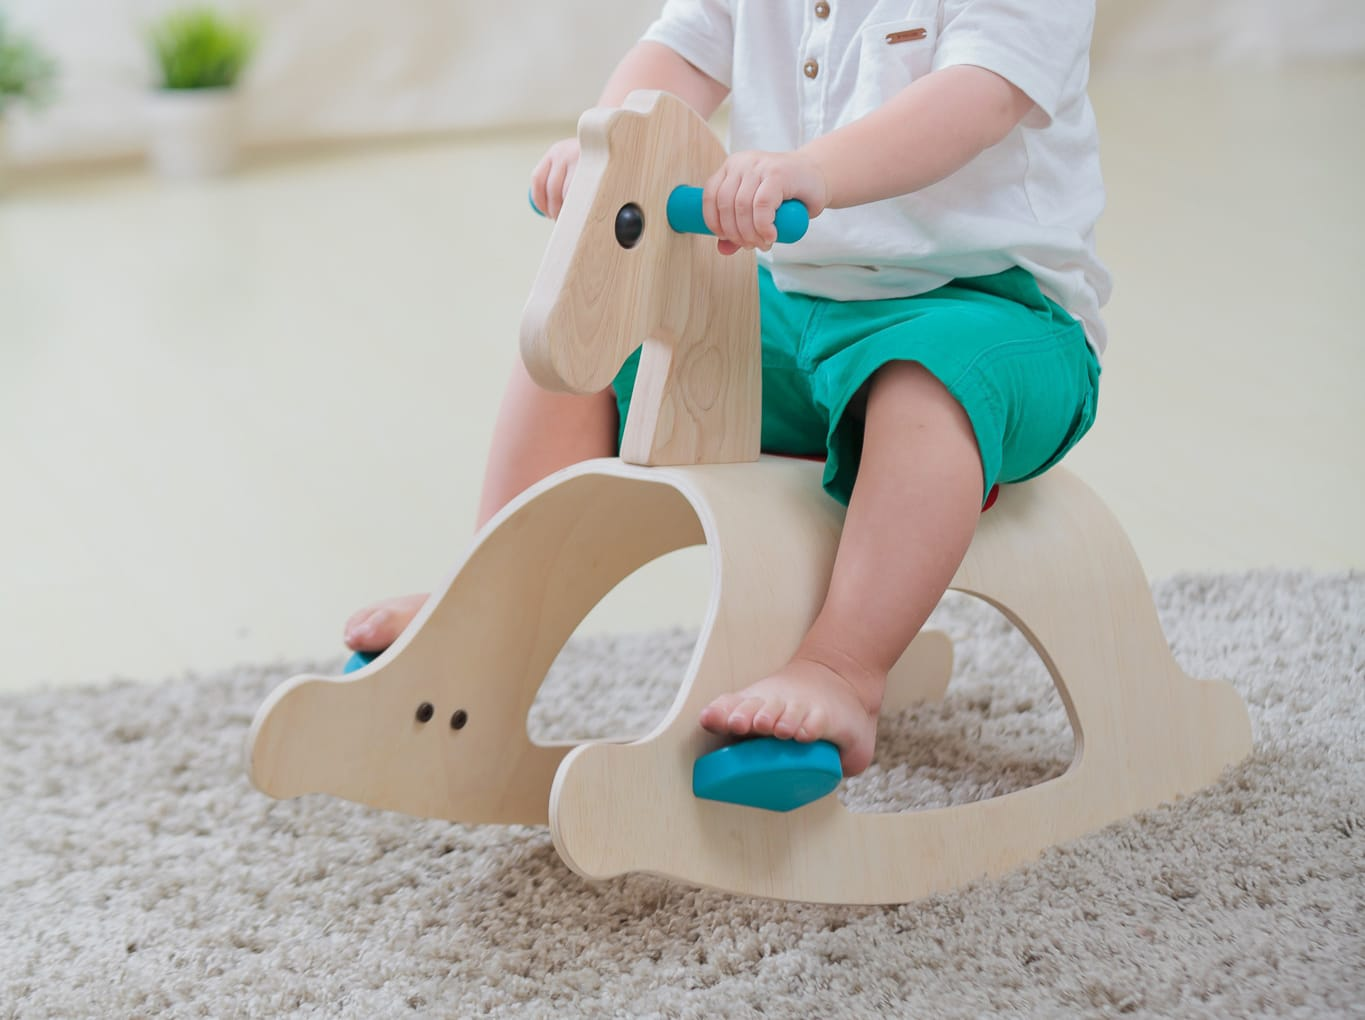 3403_PlanToys_PALOMINO_Active_Play_Gross_Motor_Coordination_Imagination_Language_and_Communications_2yrs_Wooden_toys_Education_toys_Safety_Toys_Non-toxic_5.jpg